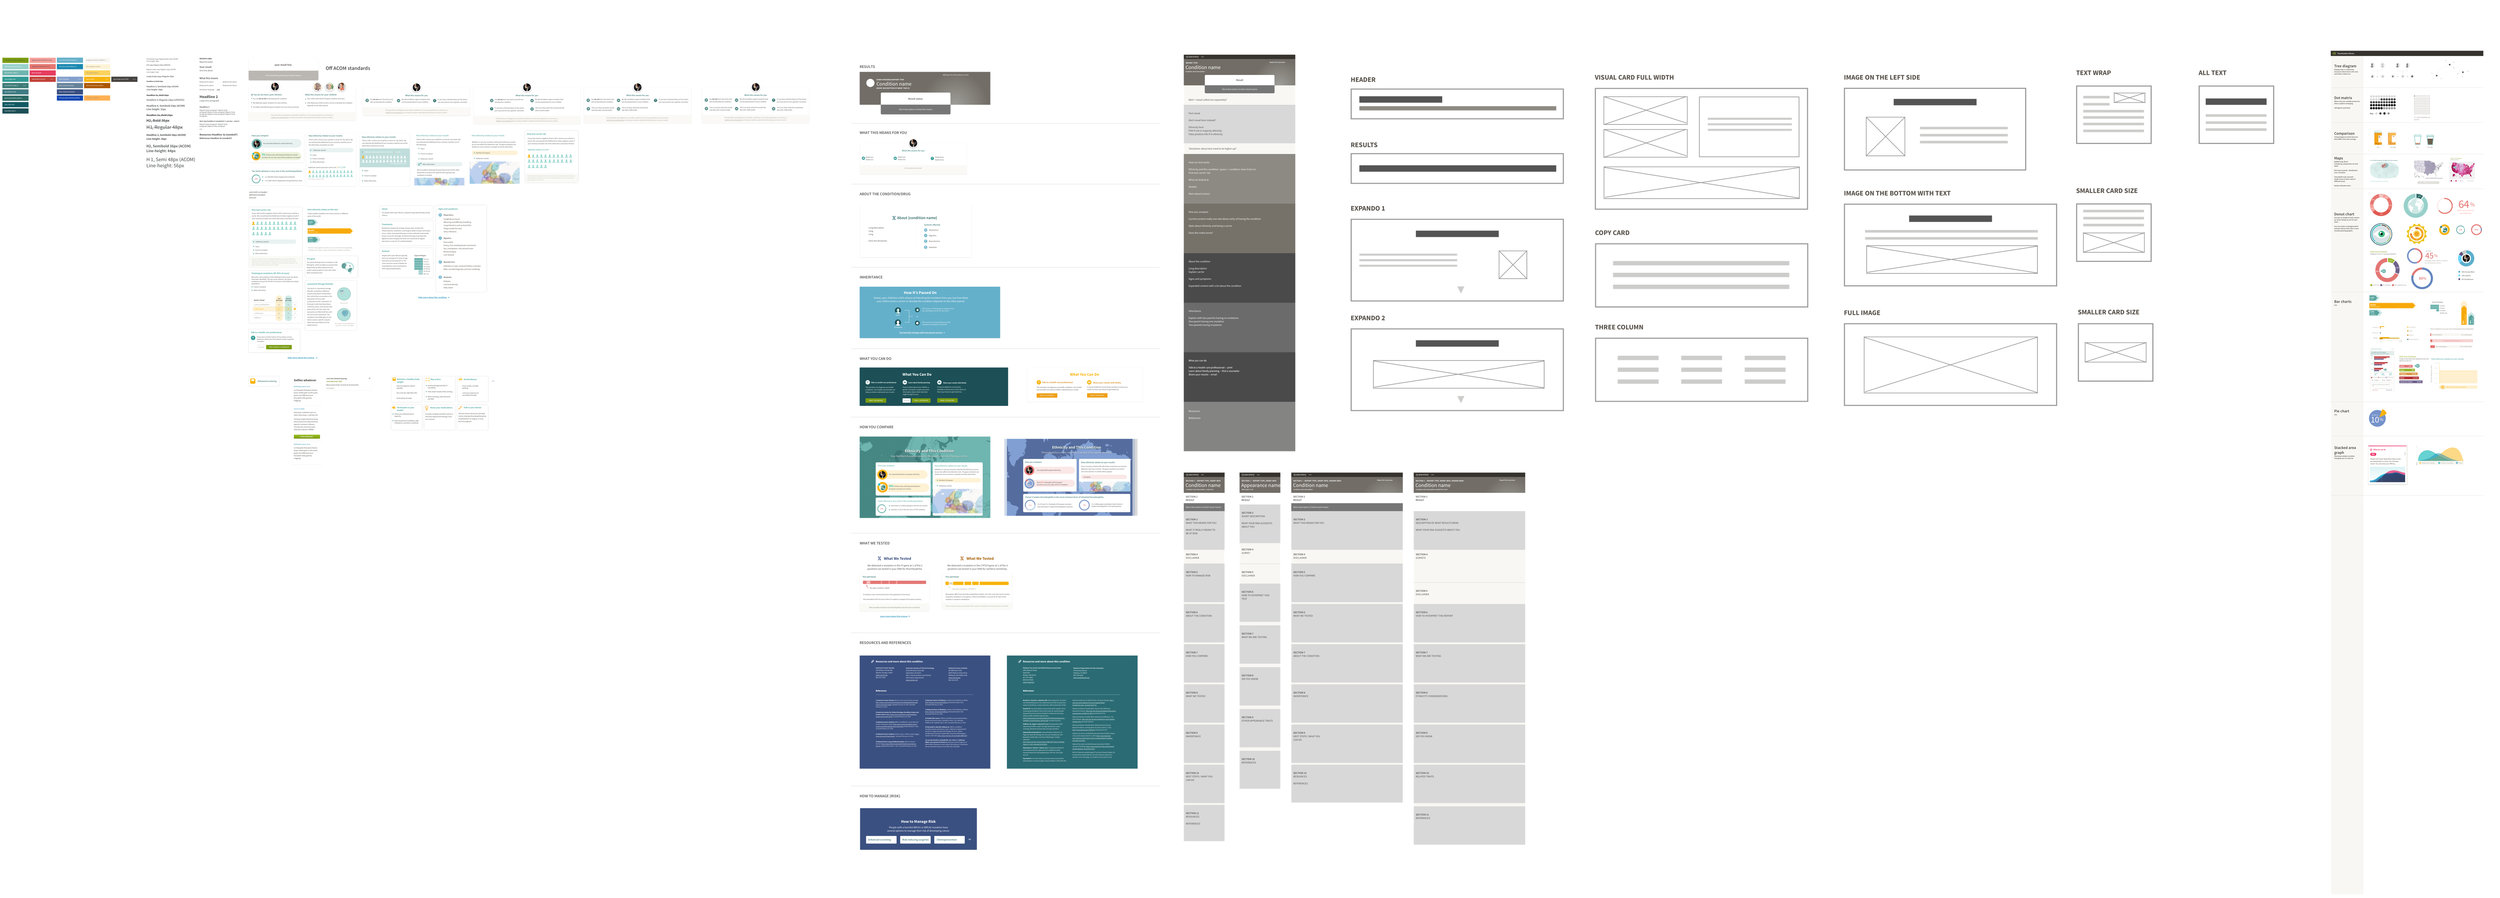 design system - Outlined report components as ideas grew to promote consistency throughout the product and align with existing features.